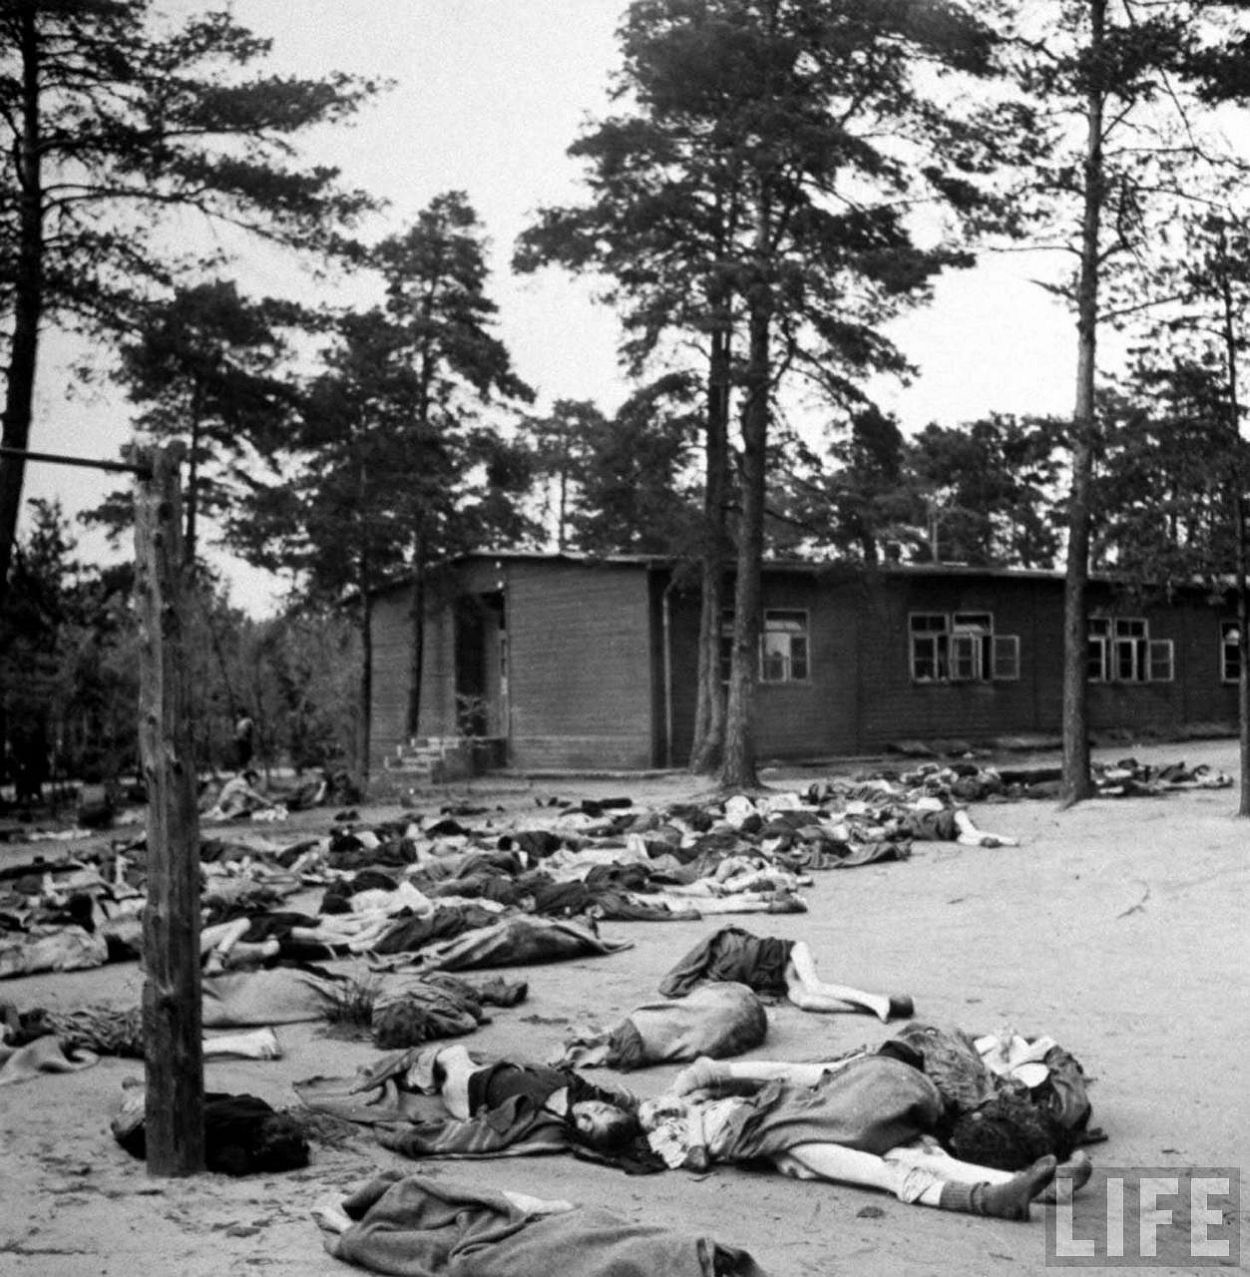 Corpses lying on ground at the Bergen-Belsen concentration camp.